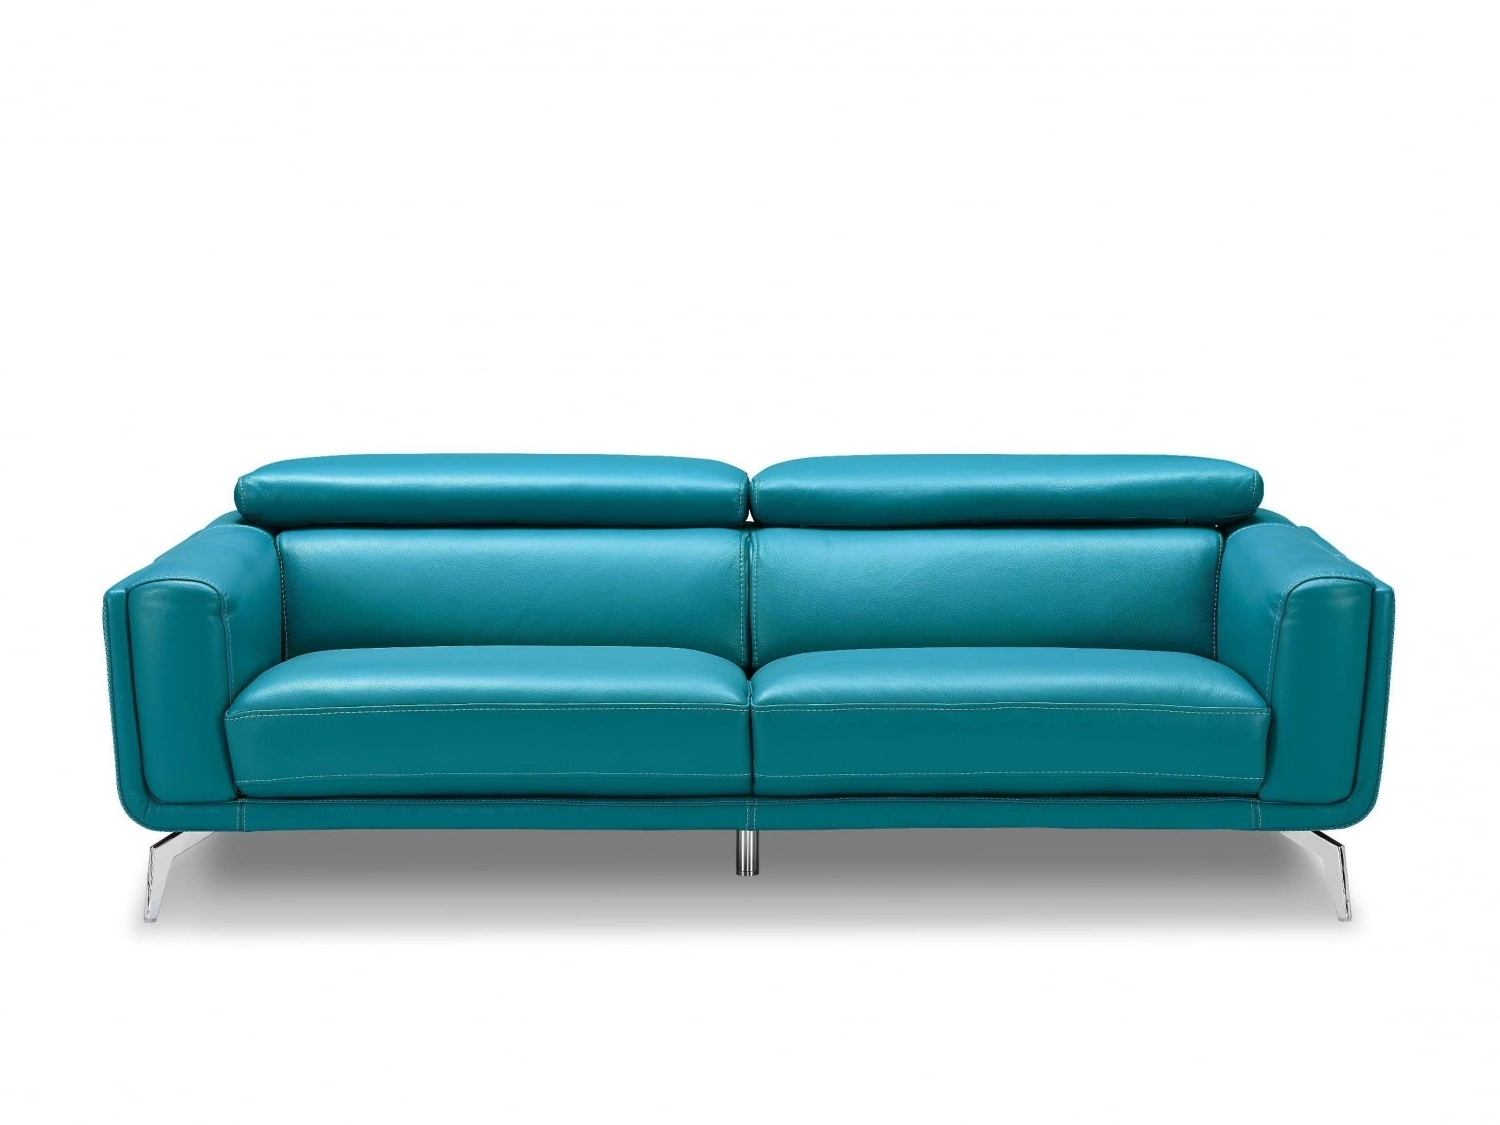 Well Known Sprint Blue Leather Sofa, High Density Foam Sofas, Stainless Steel With Regard To Turquoise Sofas (View 18 of 20)